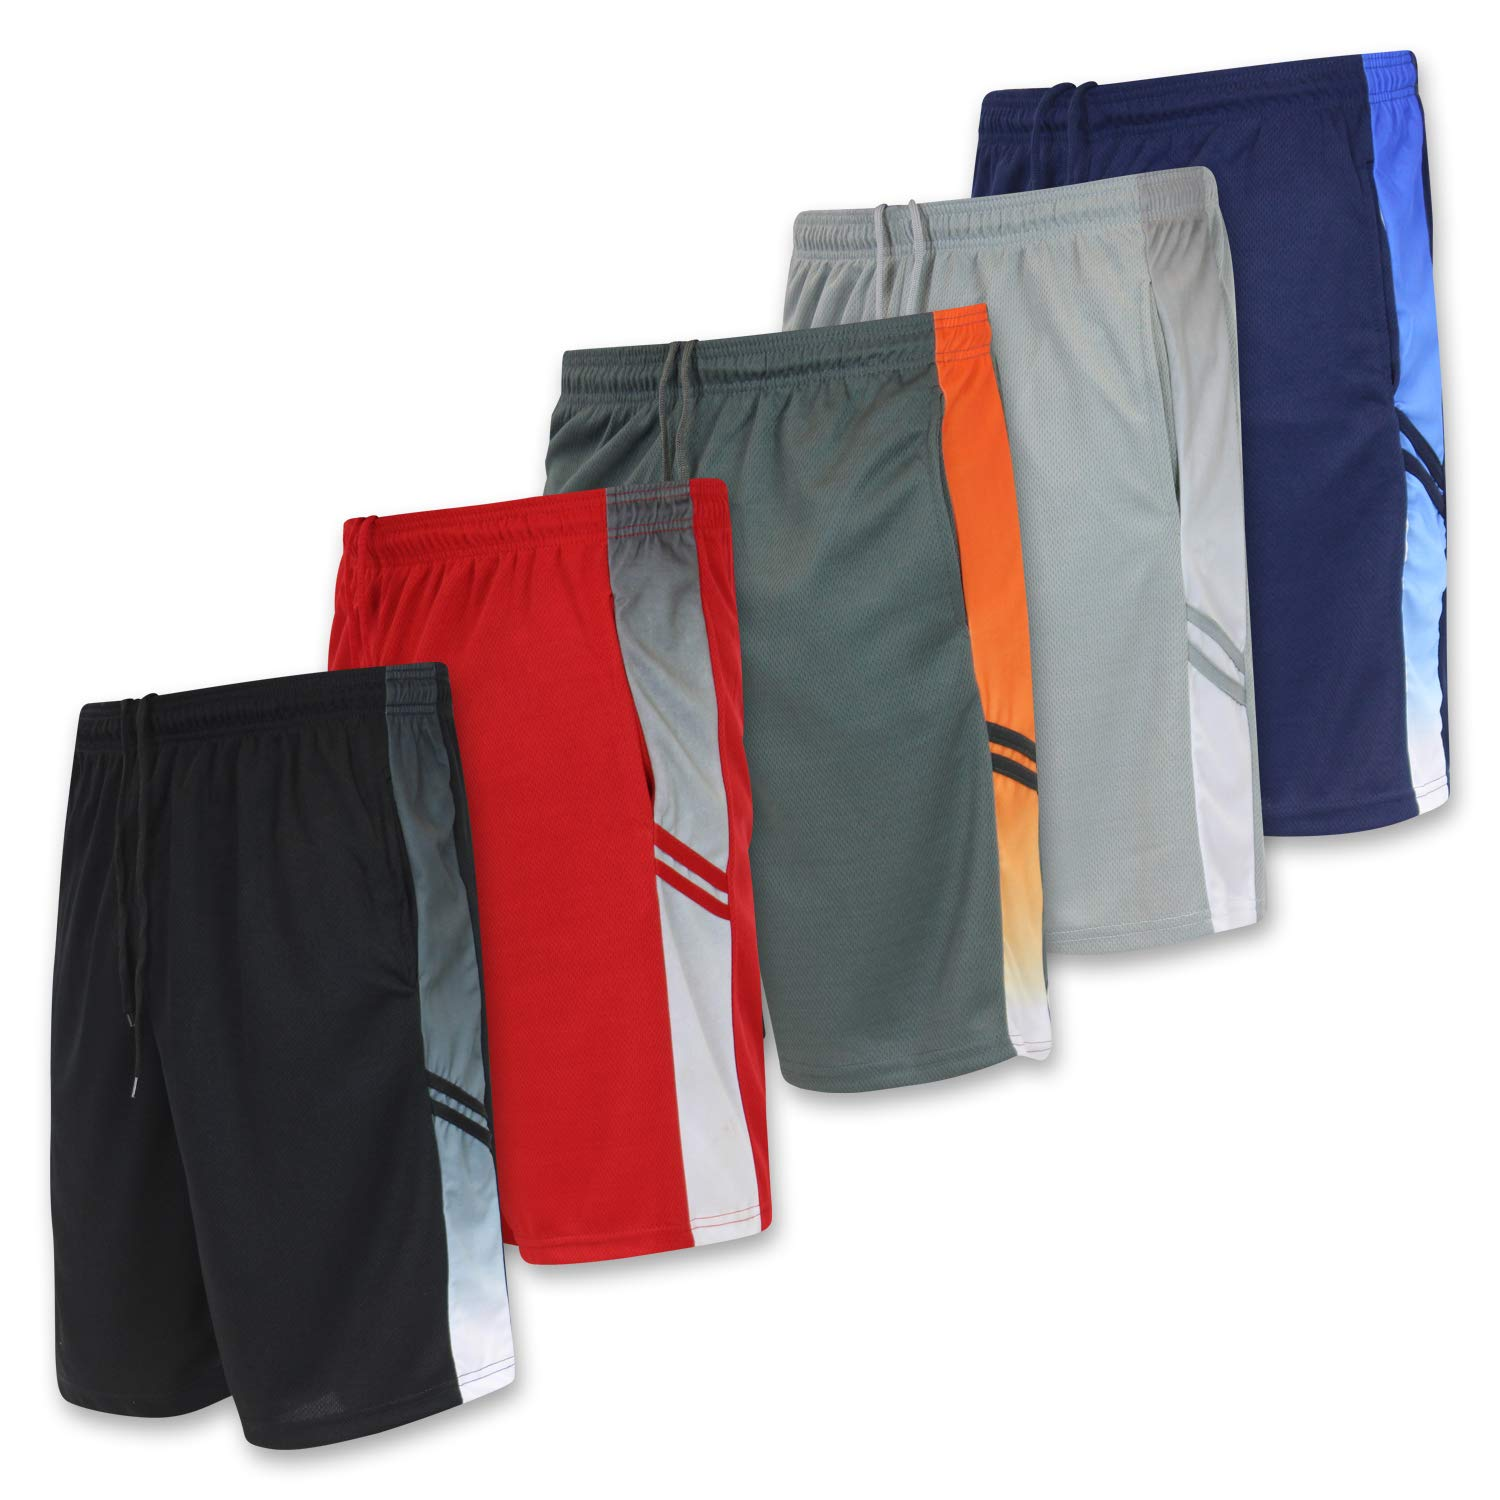 Men's Mesh Active Athletic Basketball Essentials Performance Gym Workout Clothes Sport Shorts Quick Dry - Set 1-5 Pack, S